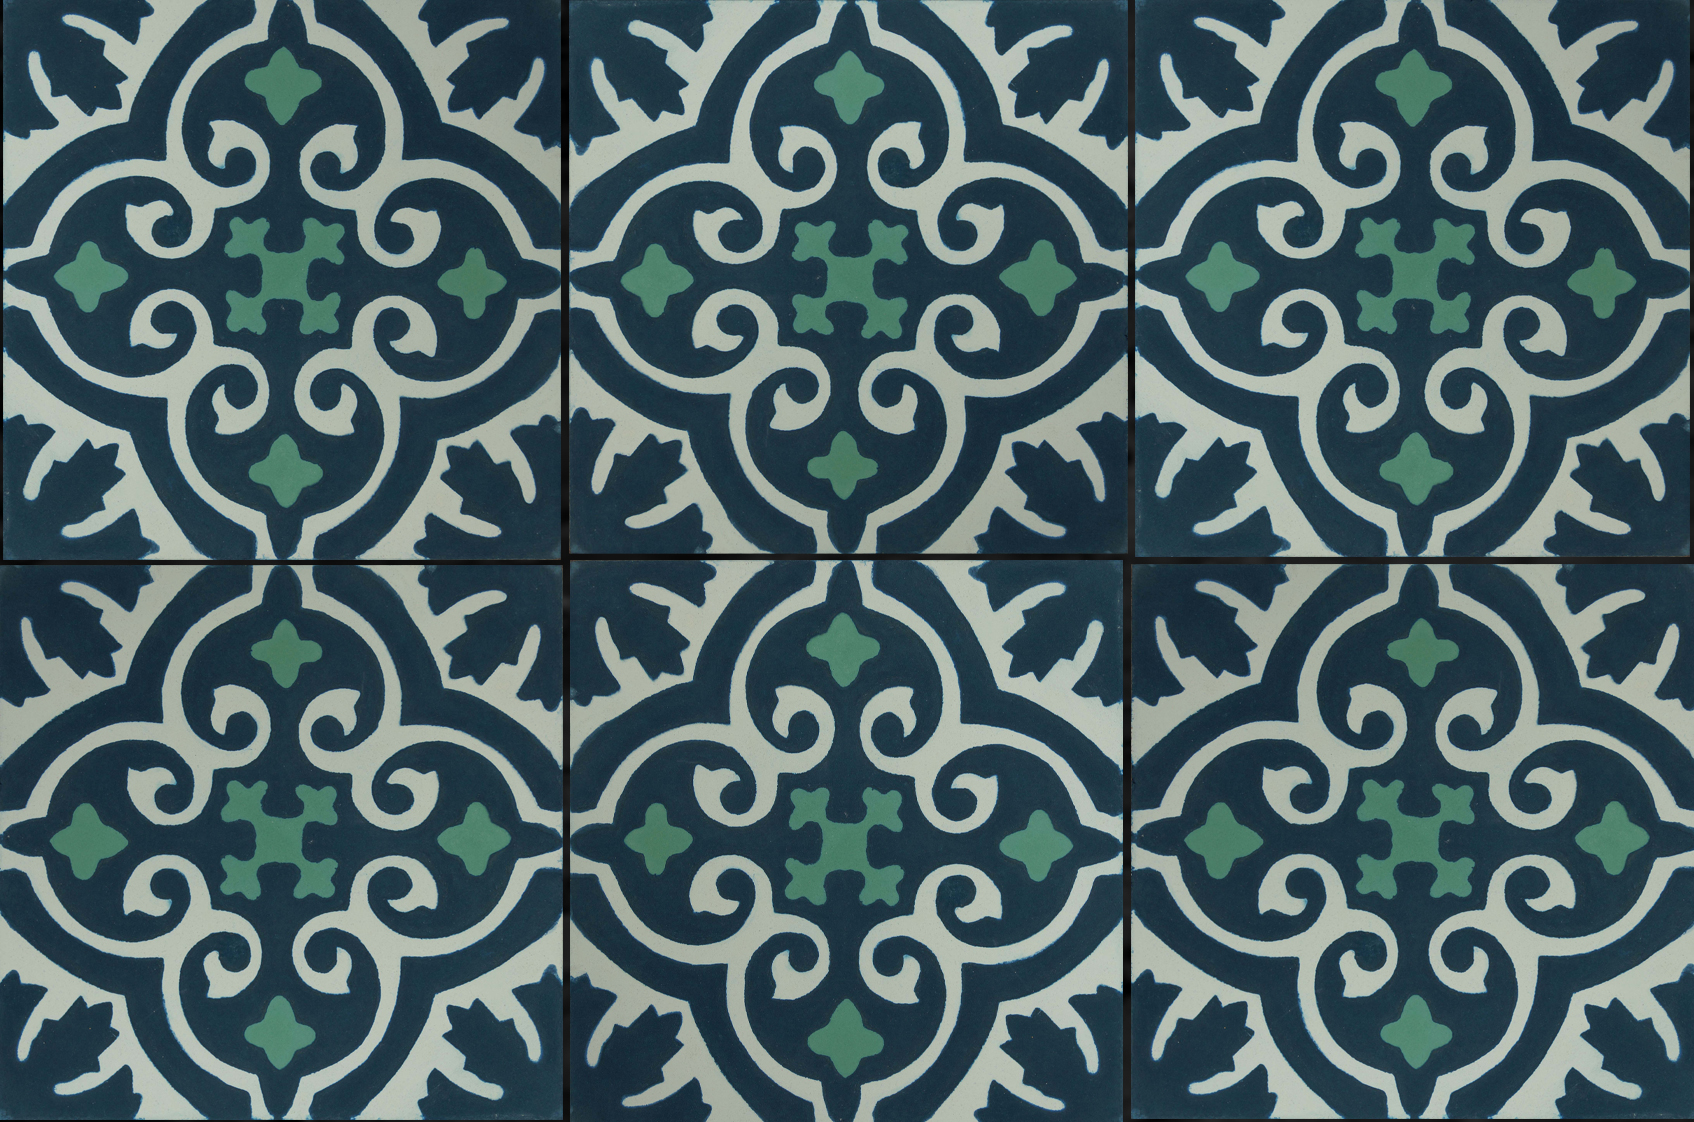 Carreaux de ciments dessins motifs colorisation sur mesure ic ne bleu vert collection - Carreaux de ciment bleu ...